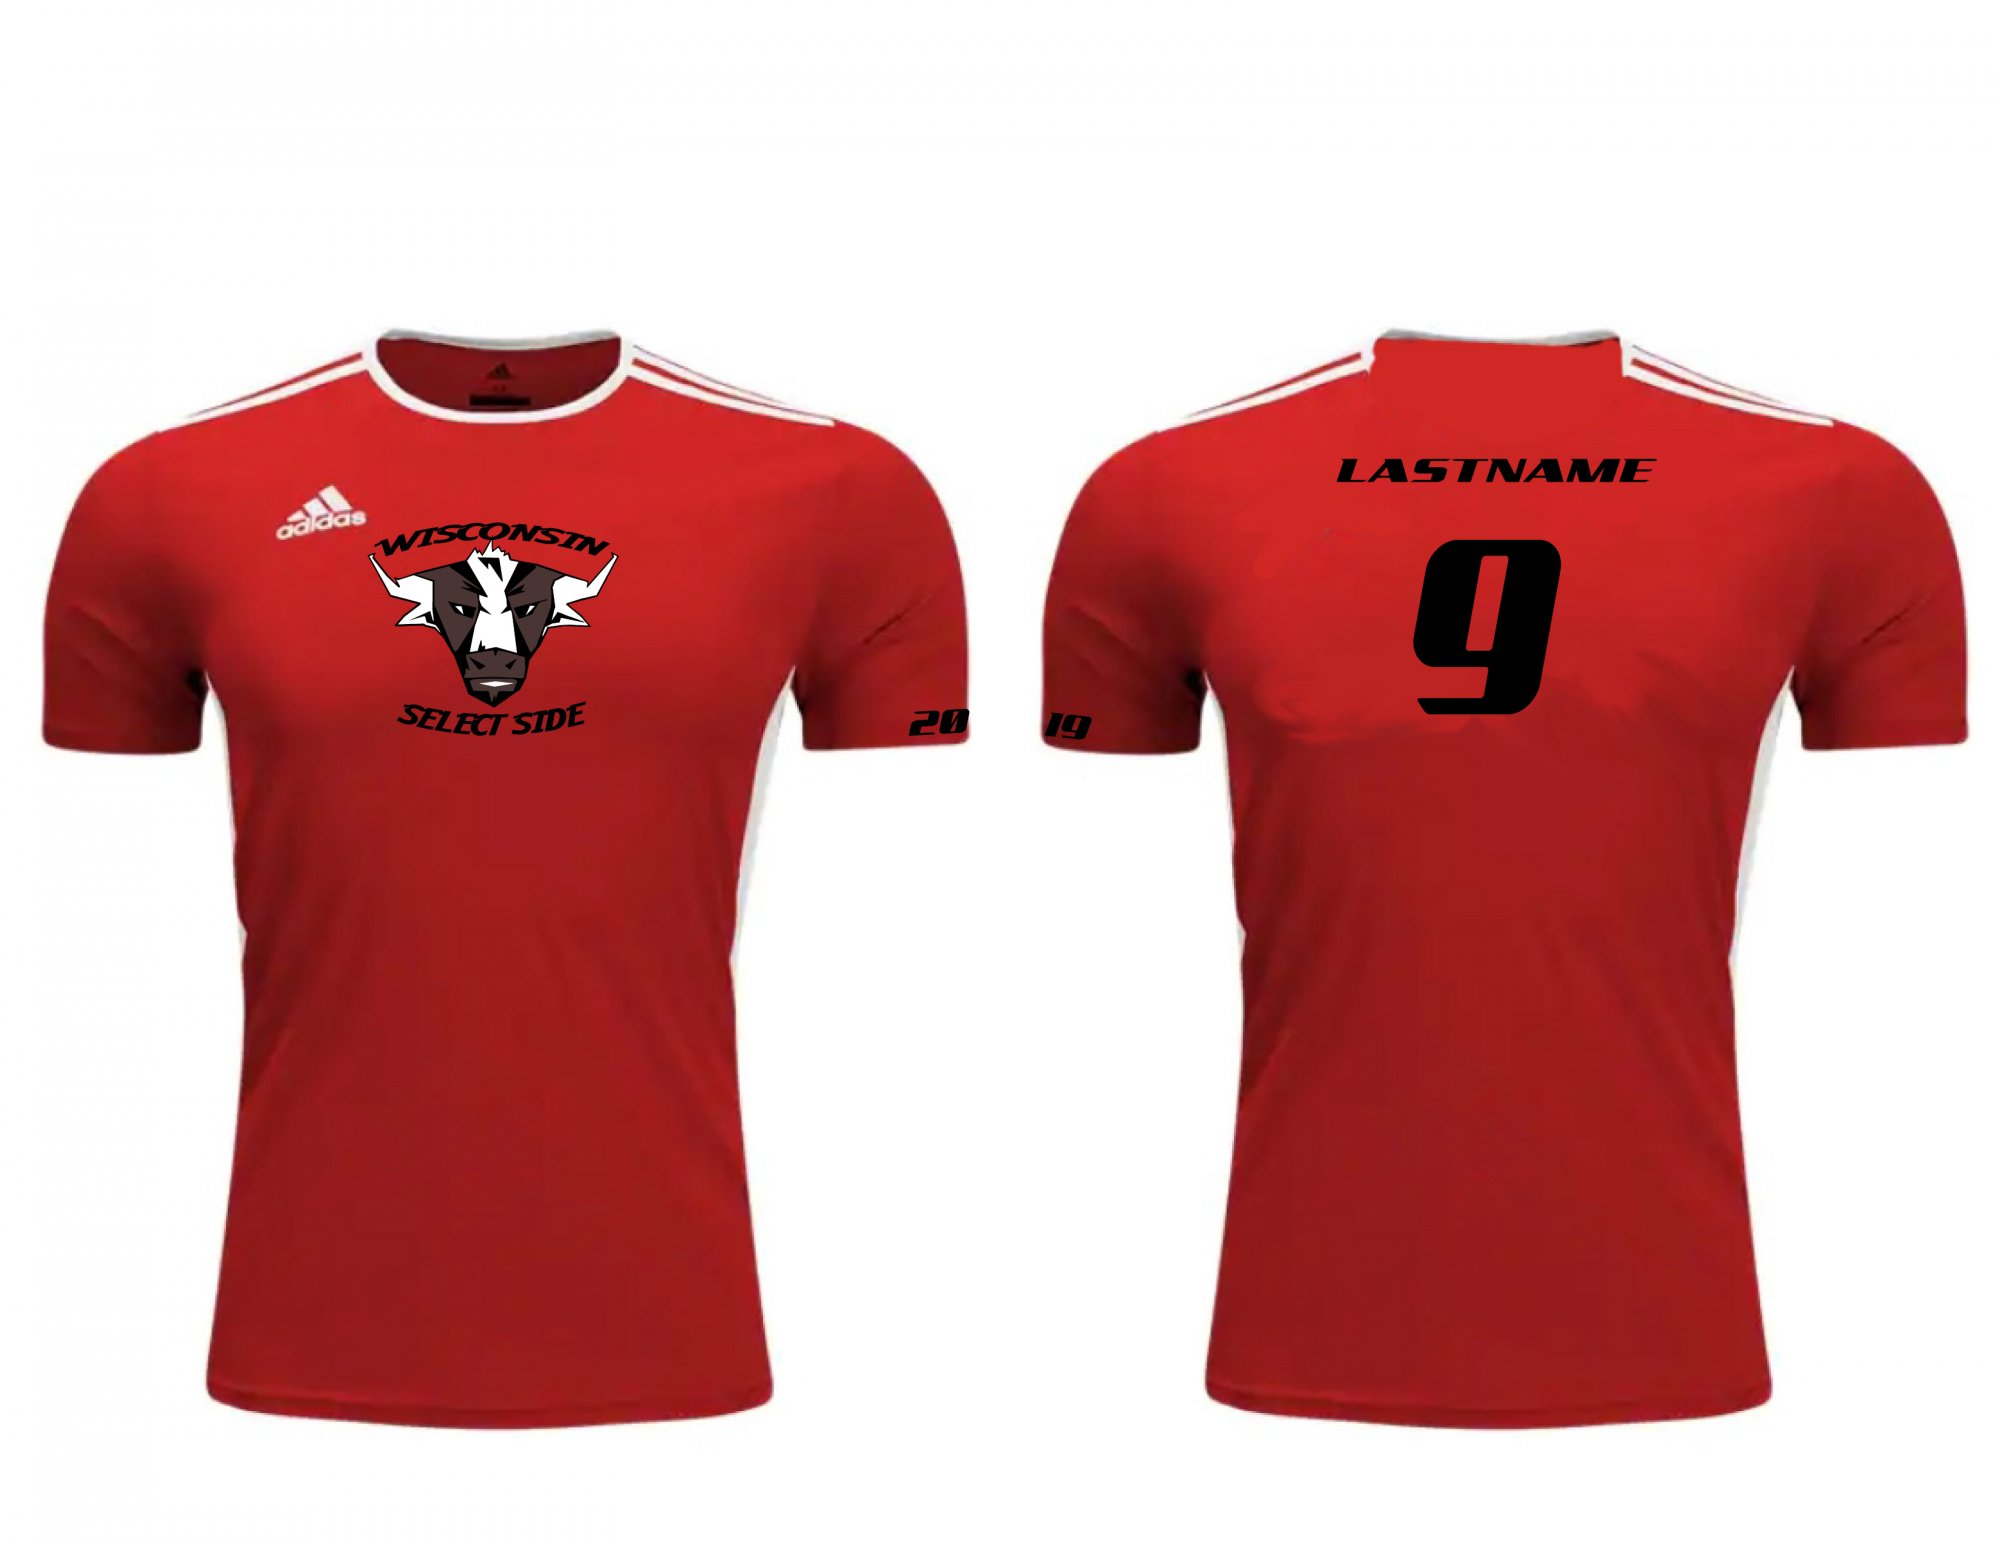 Wisconsin Select Side Jersey